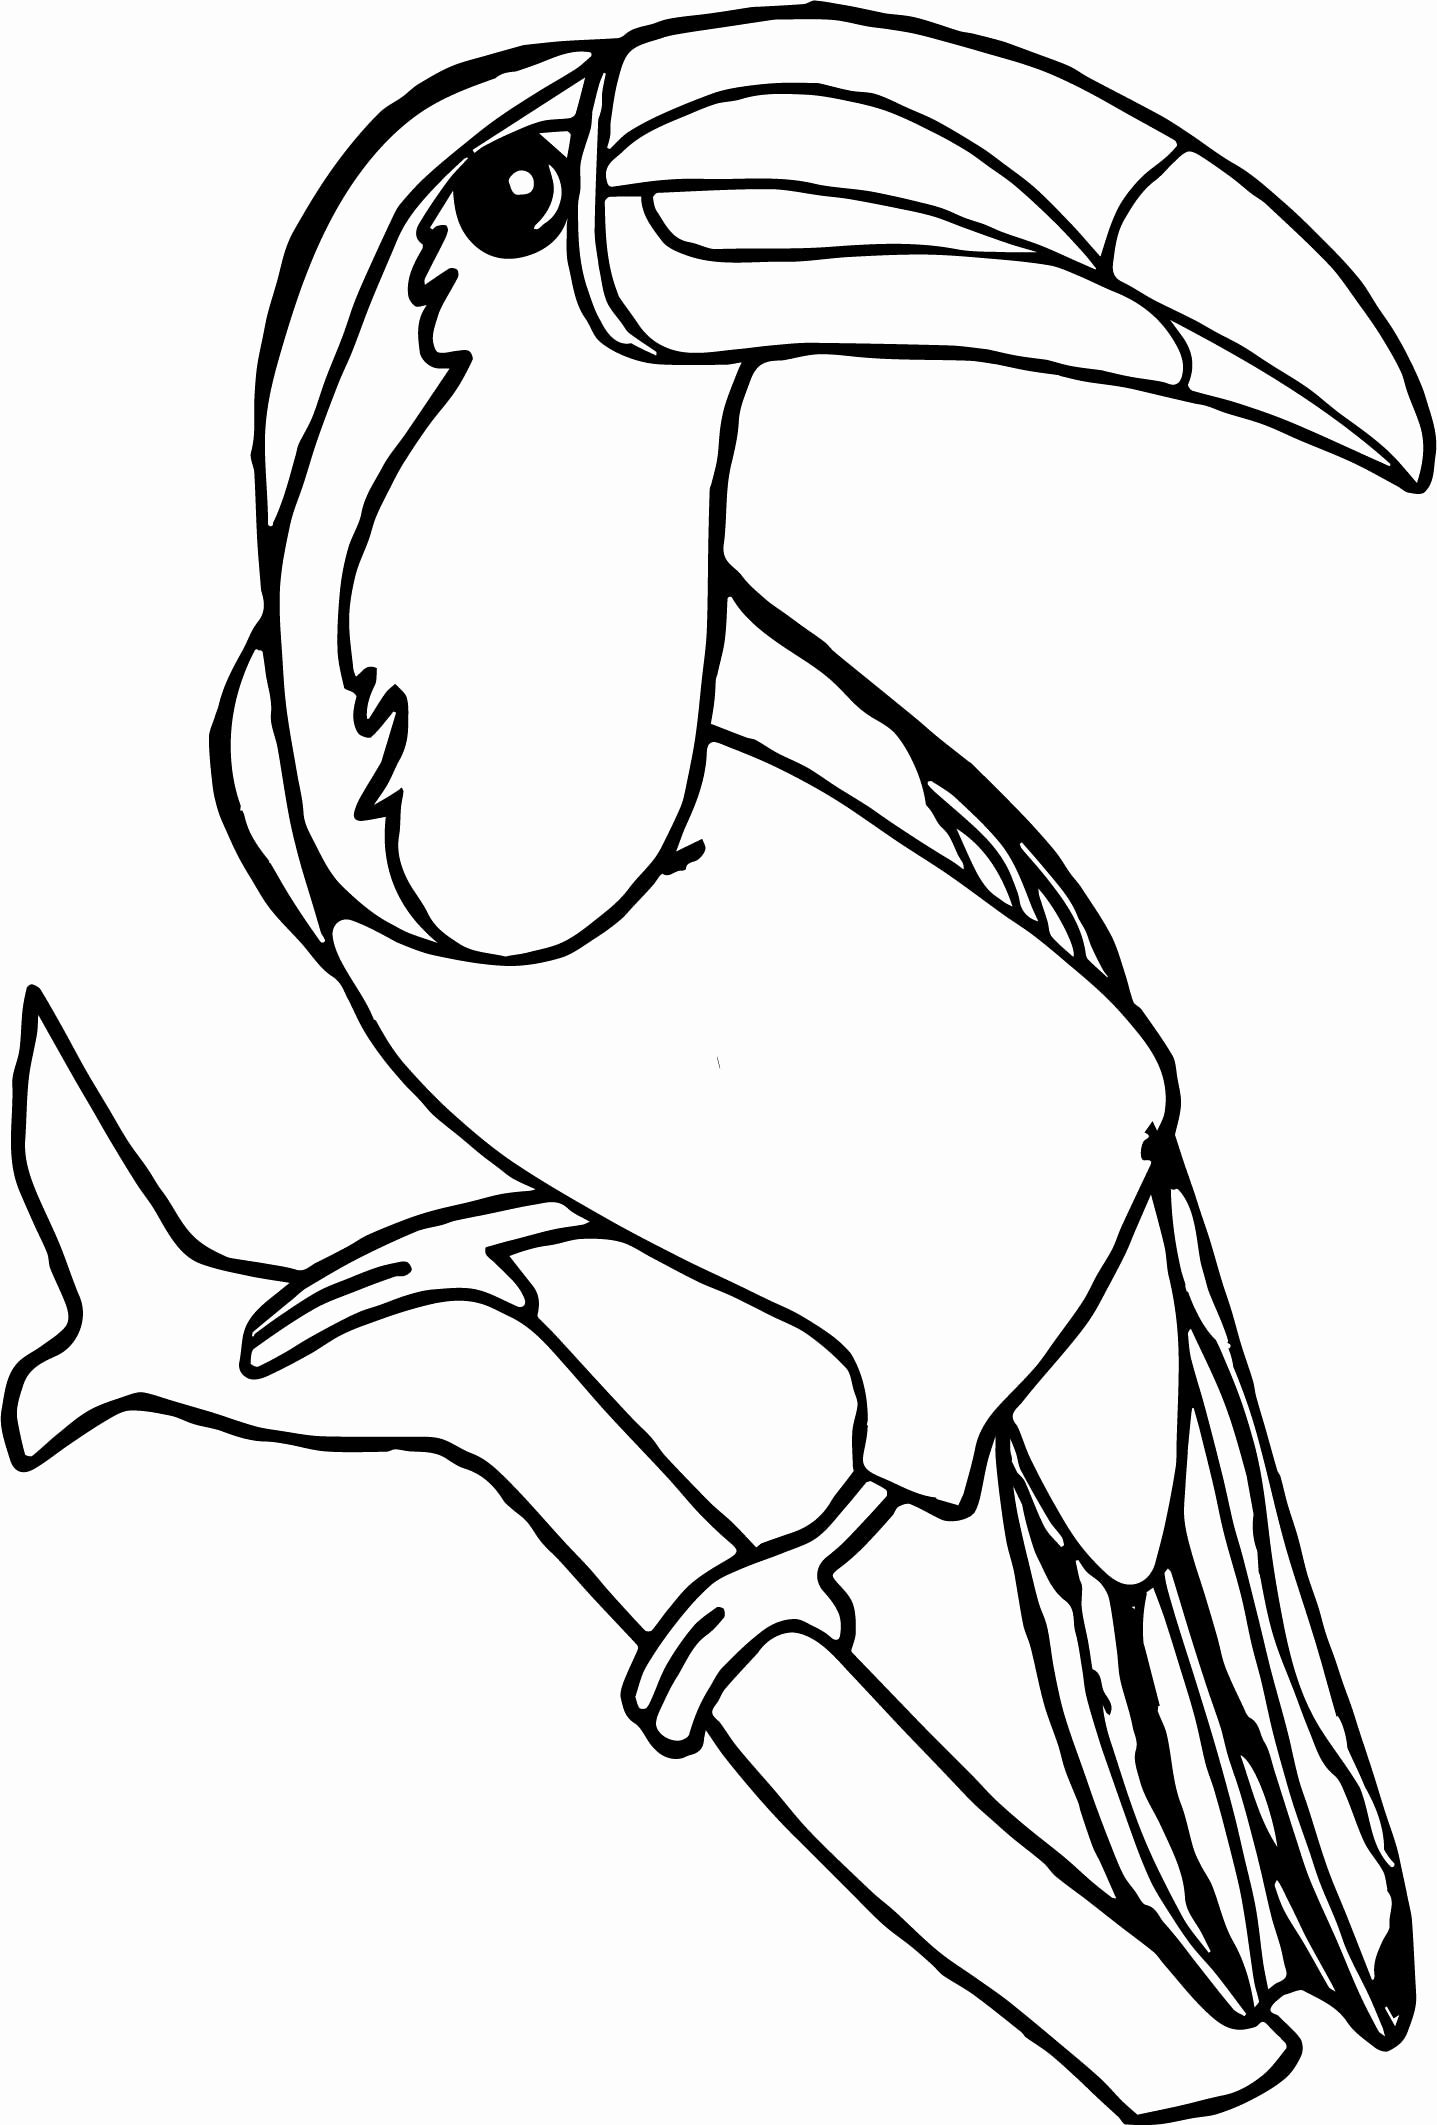 Toucans Drawing at GetDrawings.com | Free for personal use ...